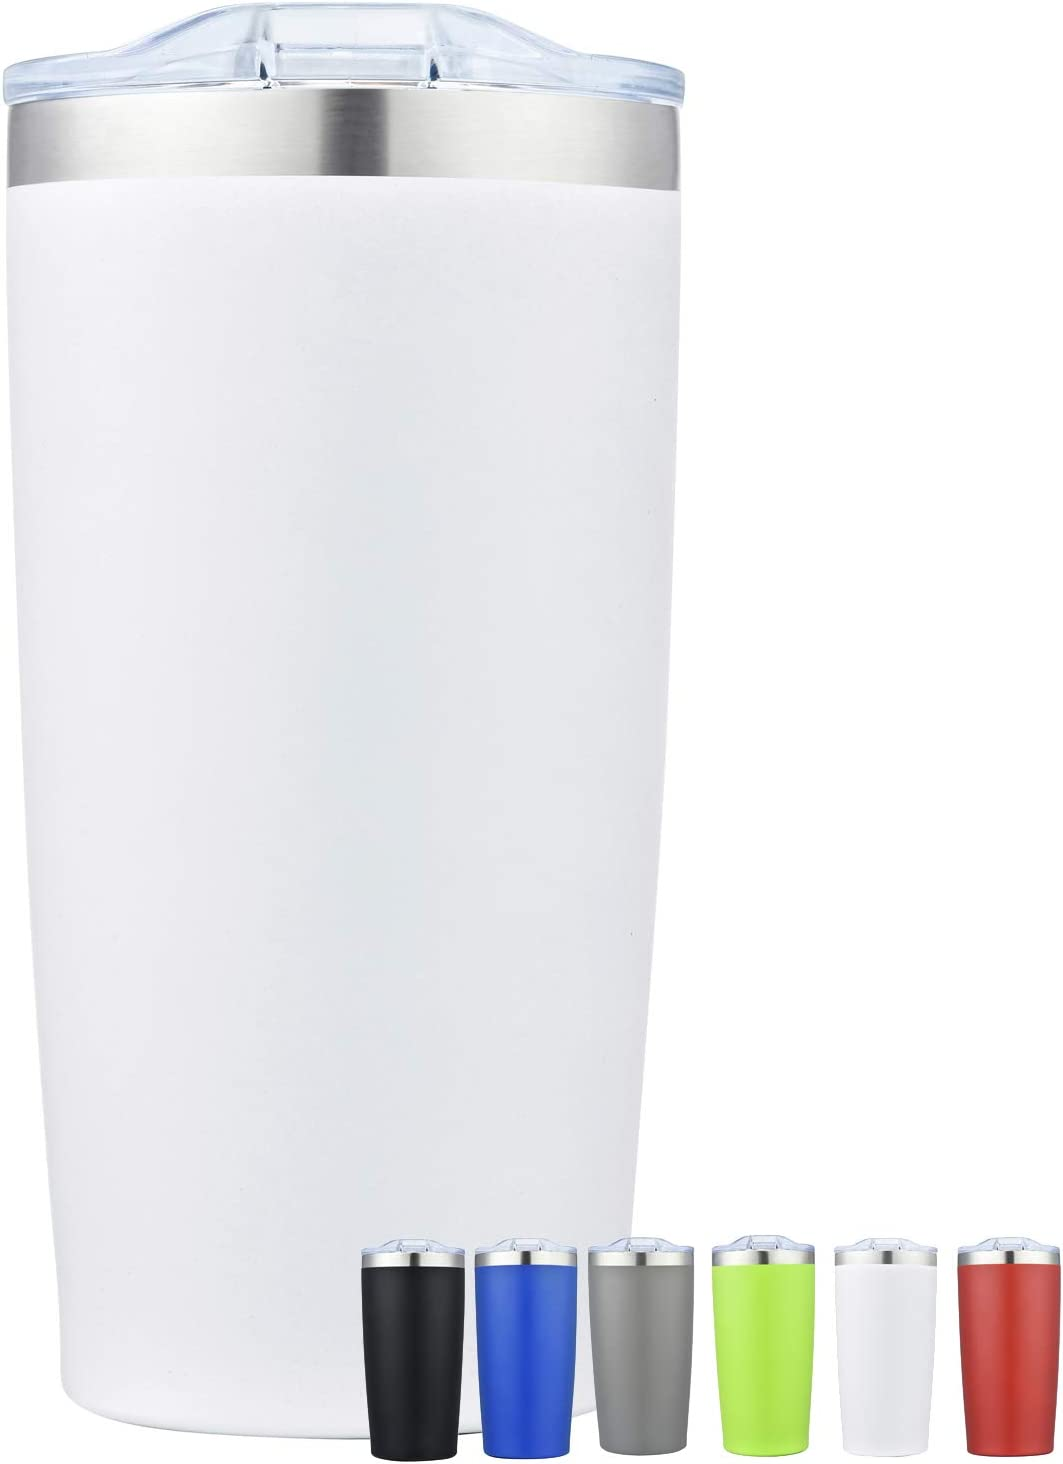 NuFazes Tumbler 20 oz Stainless Steel Tumbler Double Walled with Sliding Lid